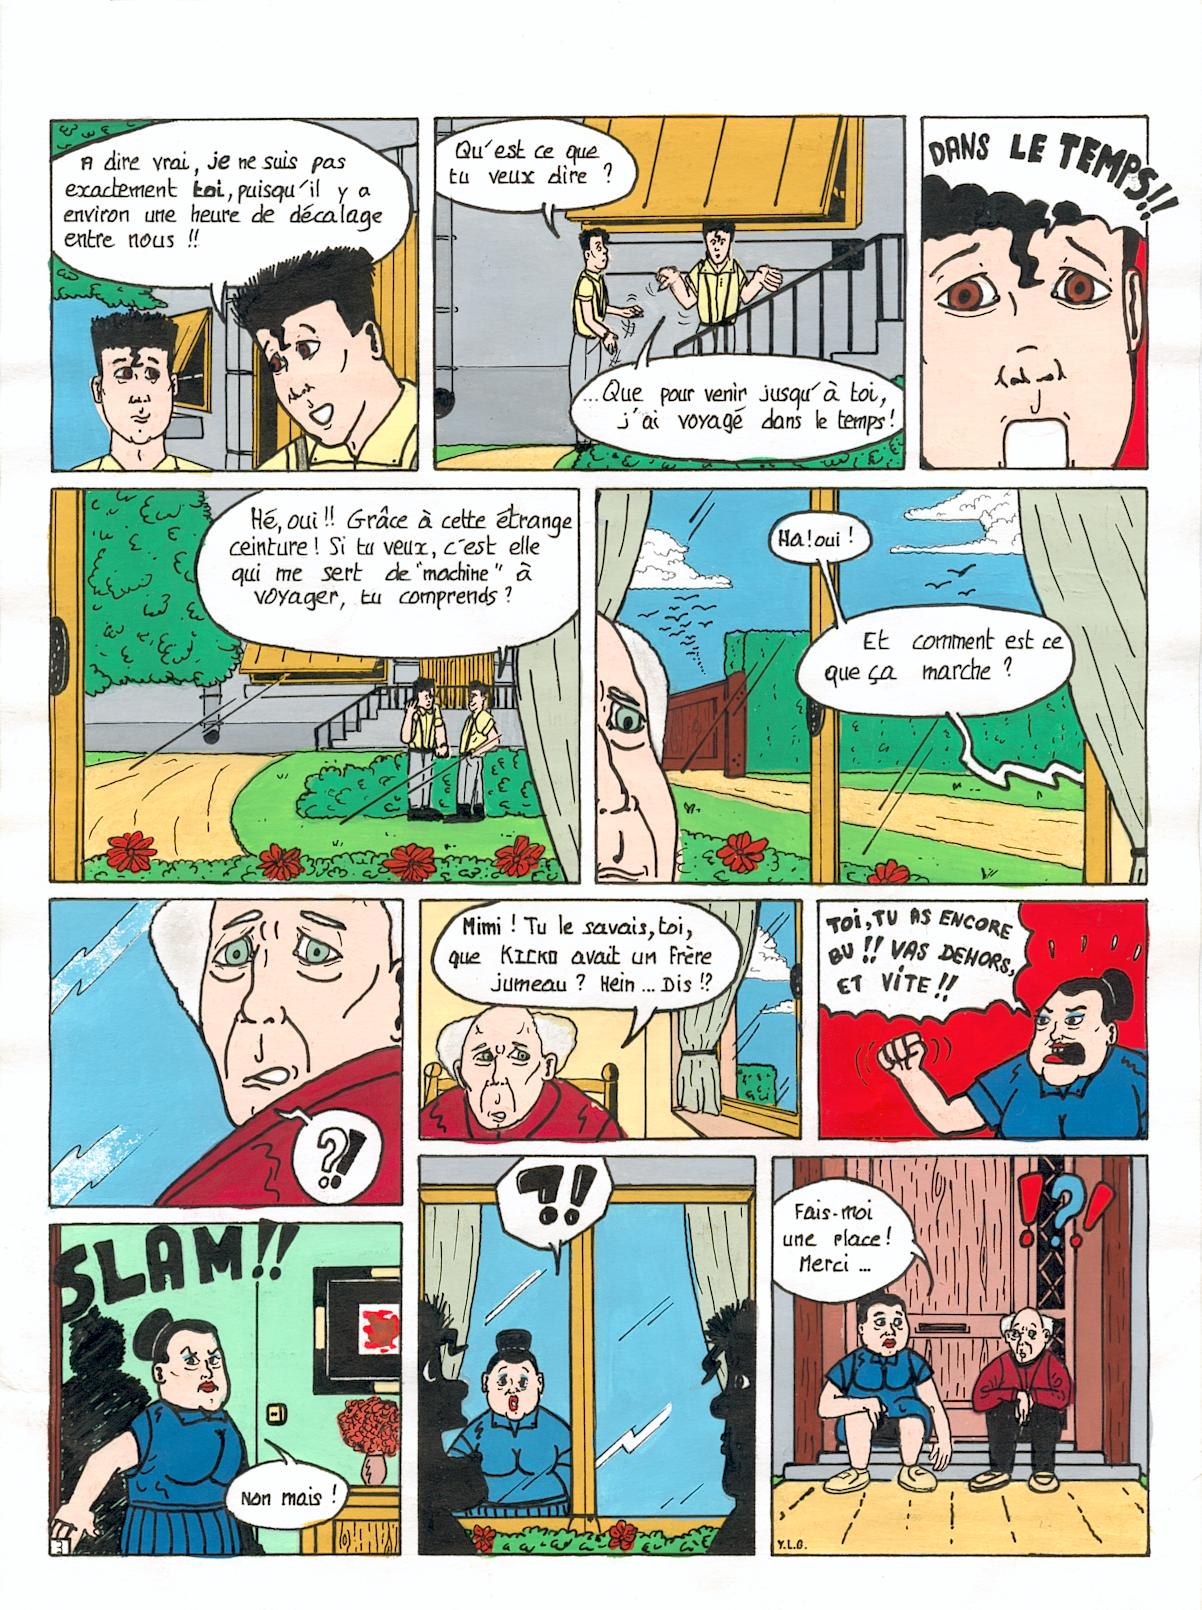 BD 6 page 3